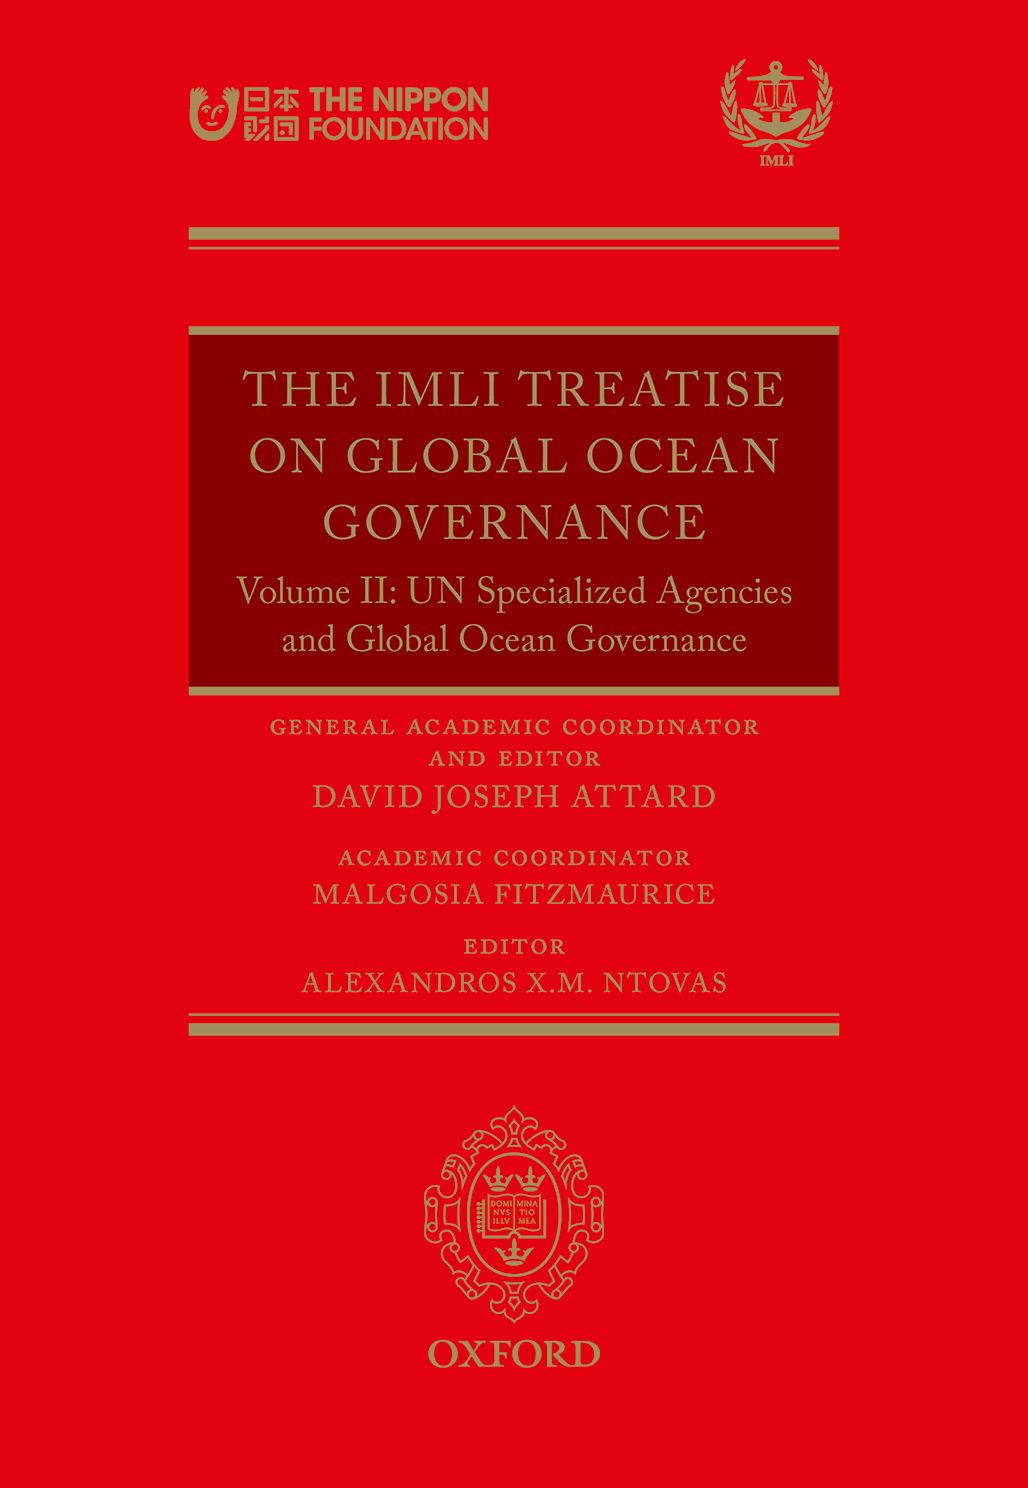 The IMLI Treatise On Global Ocean GovernanceVolume II: UN Specialized Agencies and Global Ocean Governance